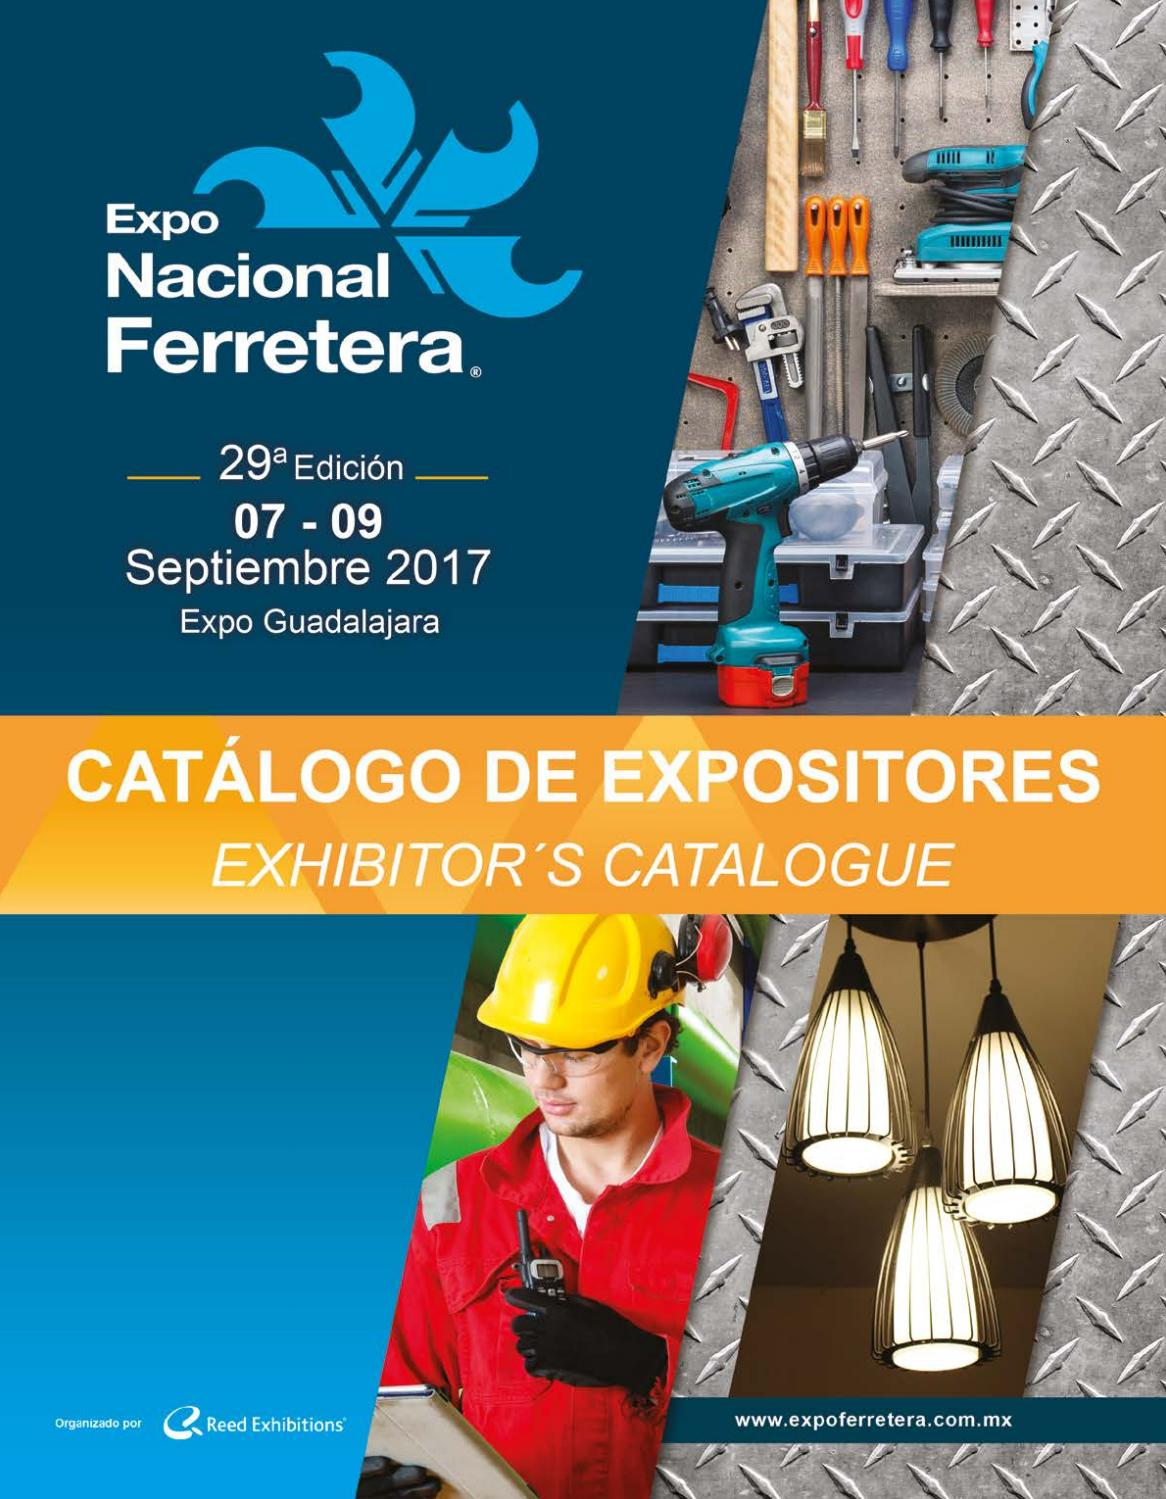 Catalogo De Expositores Expo Nacional Ferretera 2017 By Reed